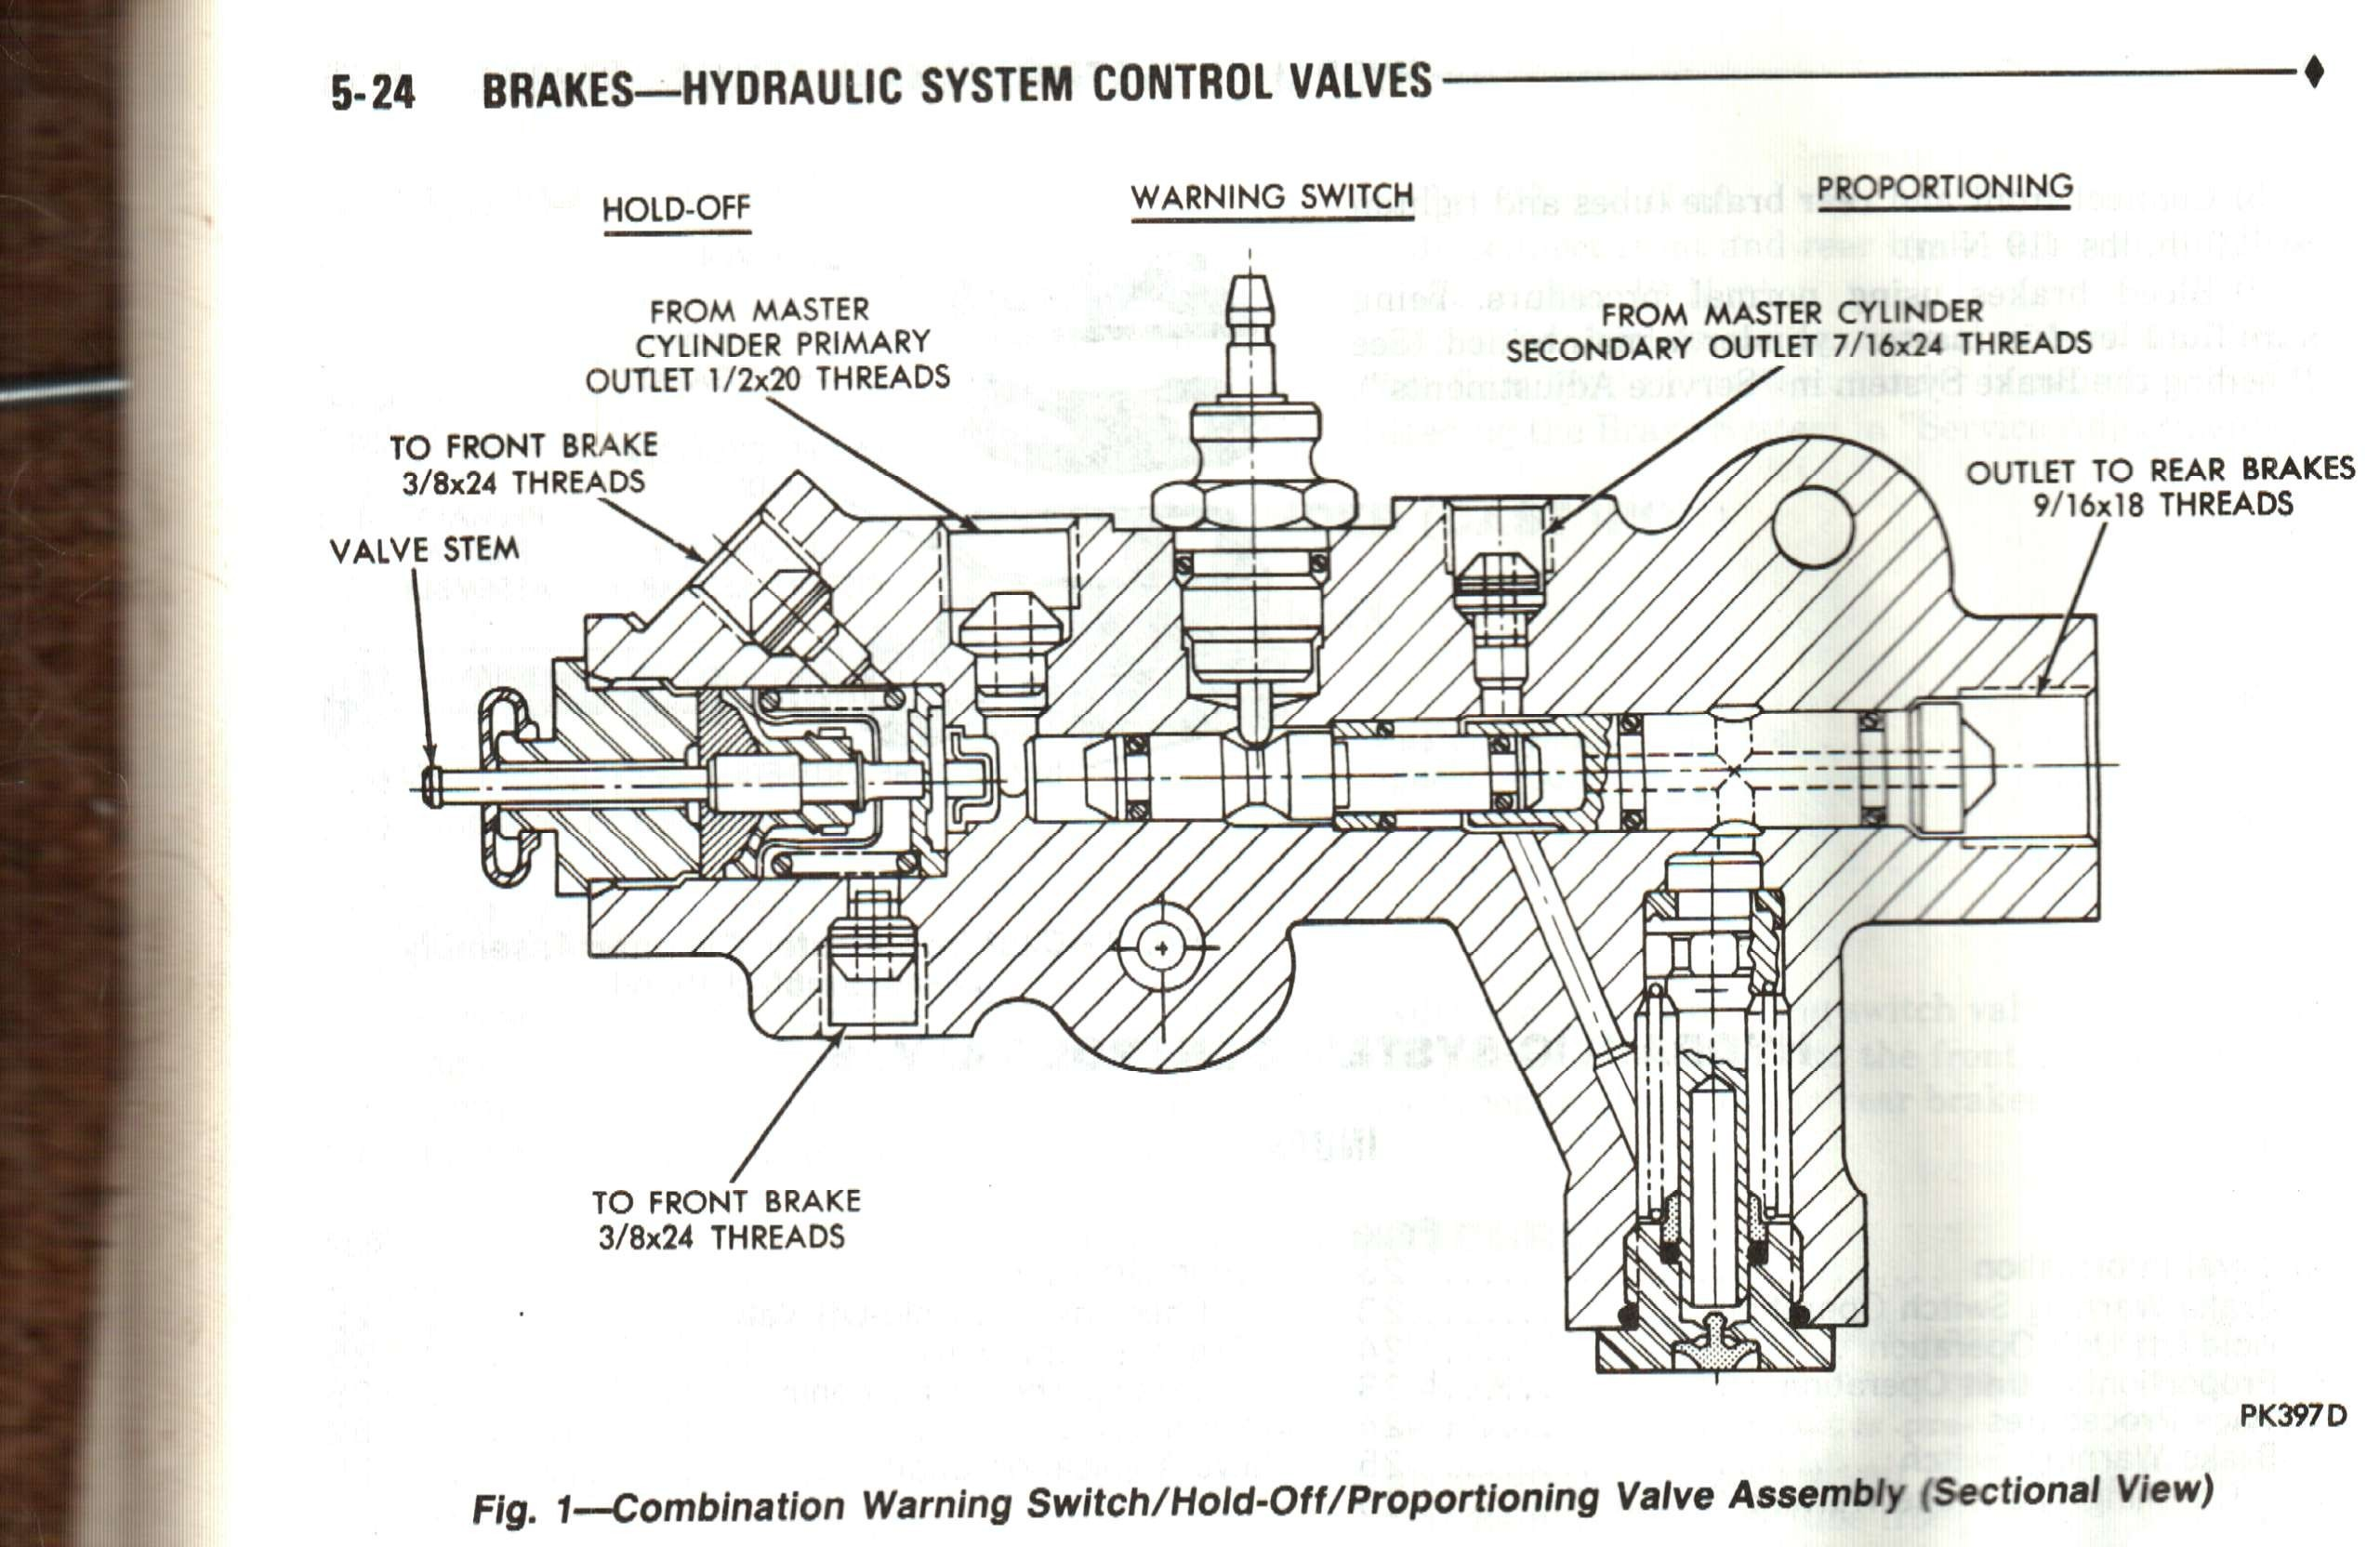 Brake Proportioning Valve Diagram Gm Proportioning Valve Diagram Hot Rod to the Rescue Fully Of Brake Proportioning Valve Diagram